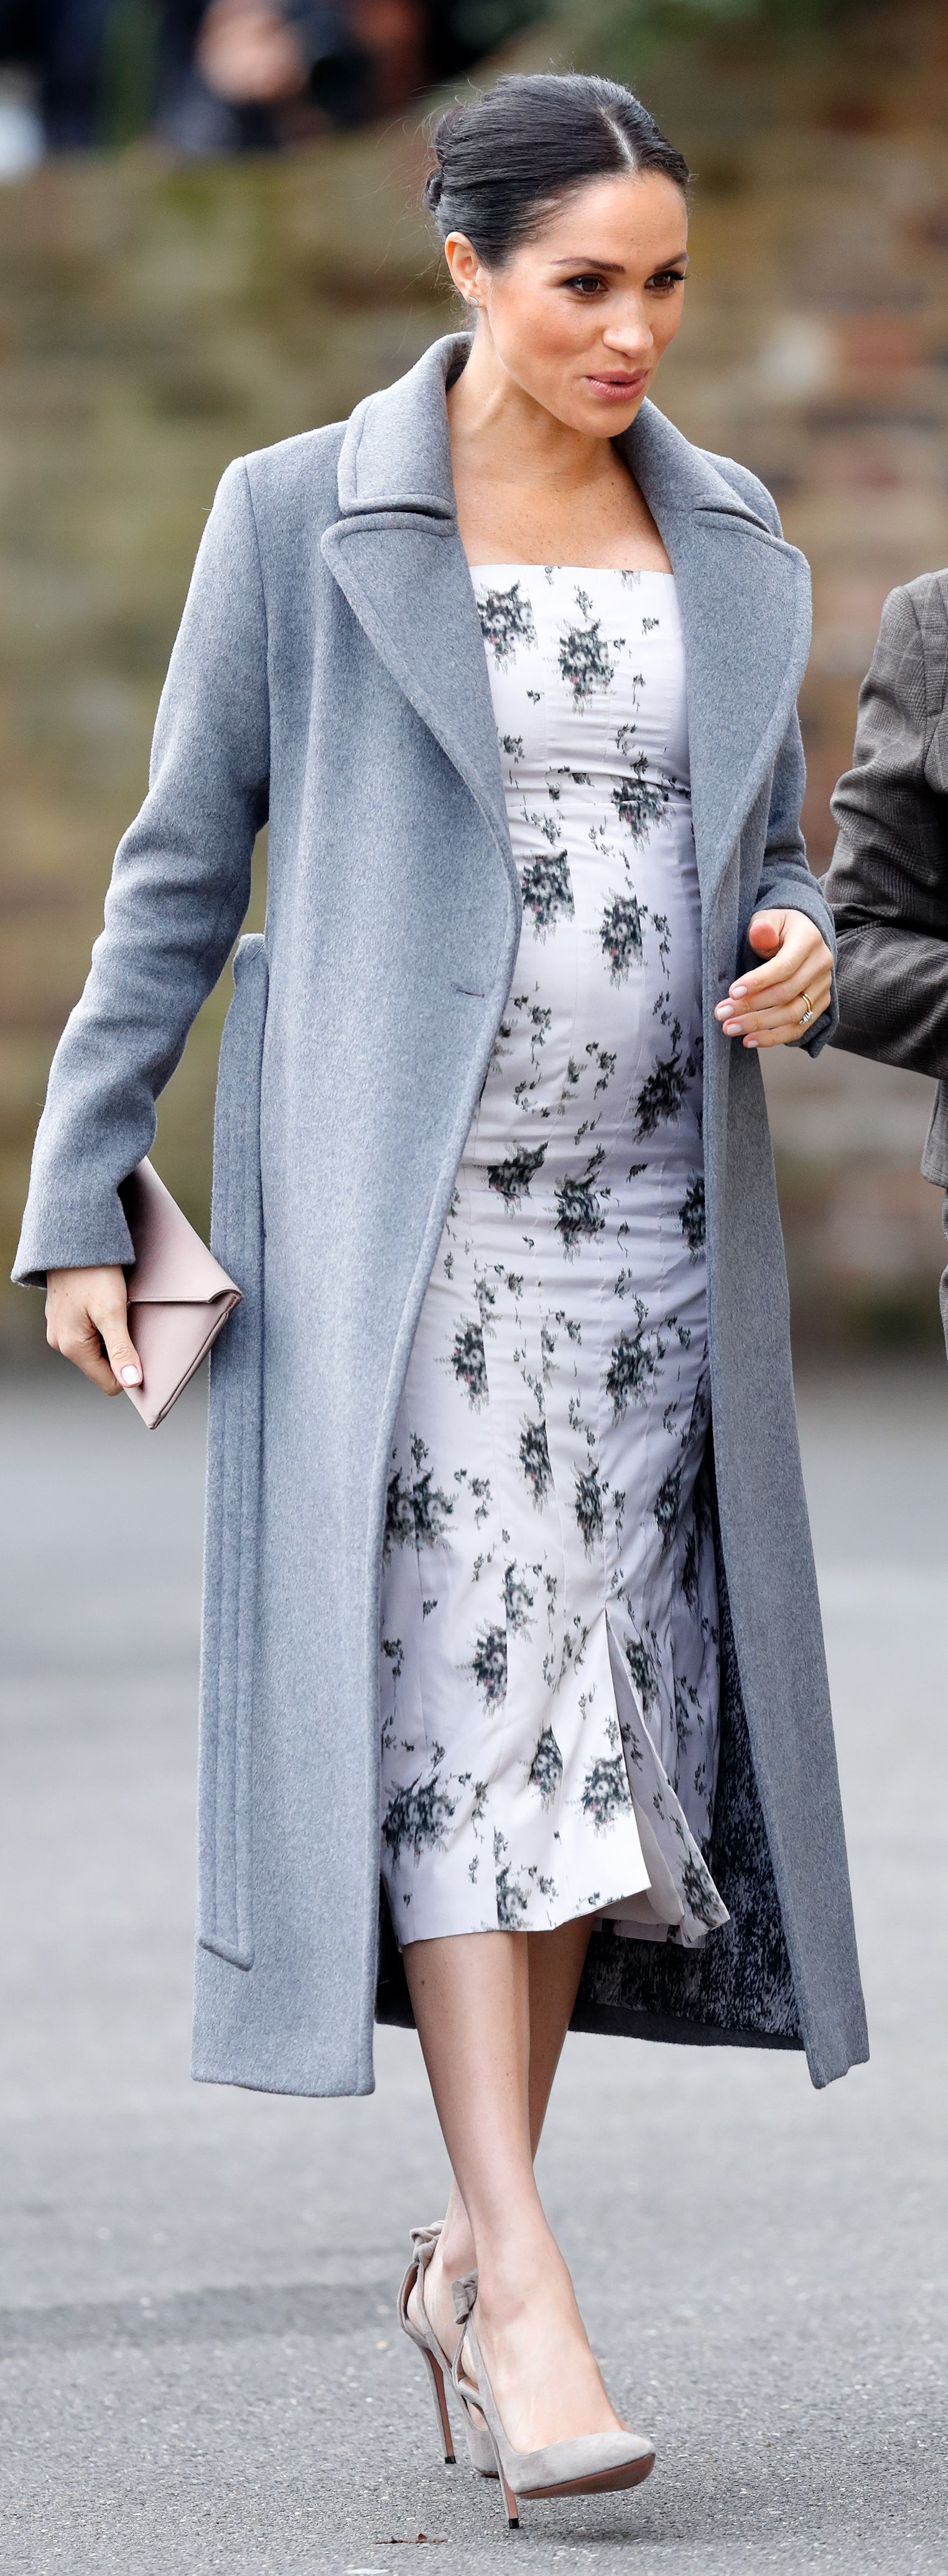 shop meghan markle s style how to wear meghan markle s outfits shop meghan markle s style how to